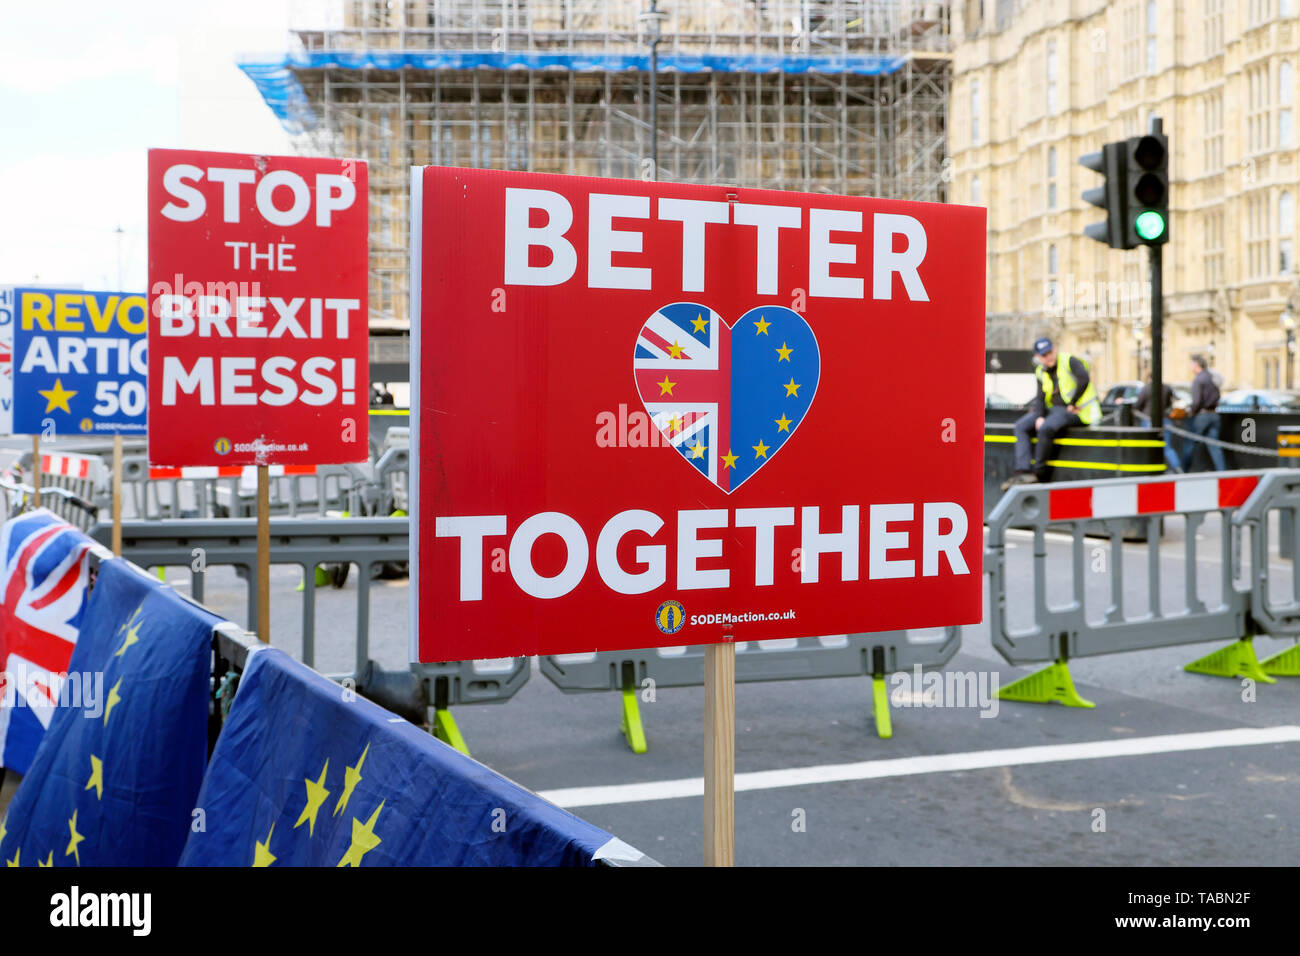 STOP THE BREXIT MESS! and BETTER TOGETHER EU BREXIT Remain poster placard and flags banners on barriers in the street outside the Houses of Parliament in Westminster London England UK 21 May 2019  KATHY DEWITT - Stock Image